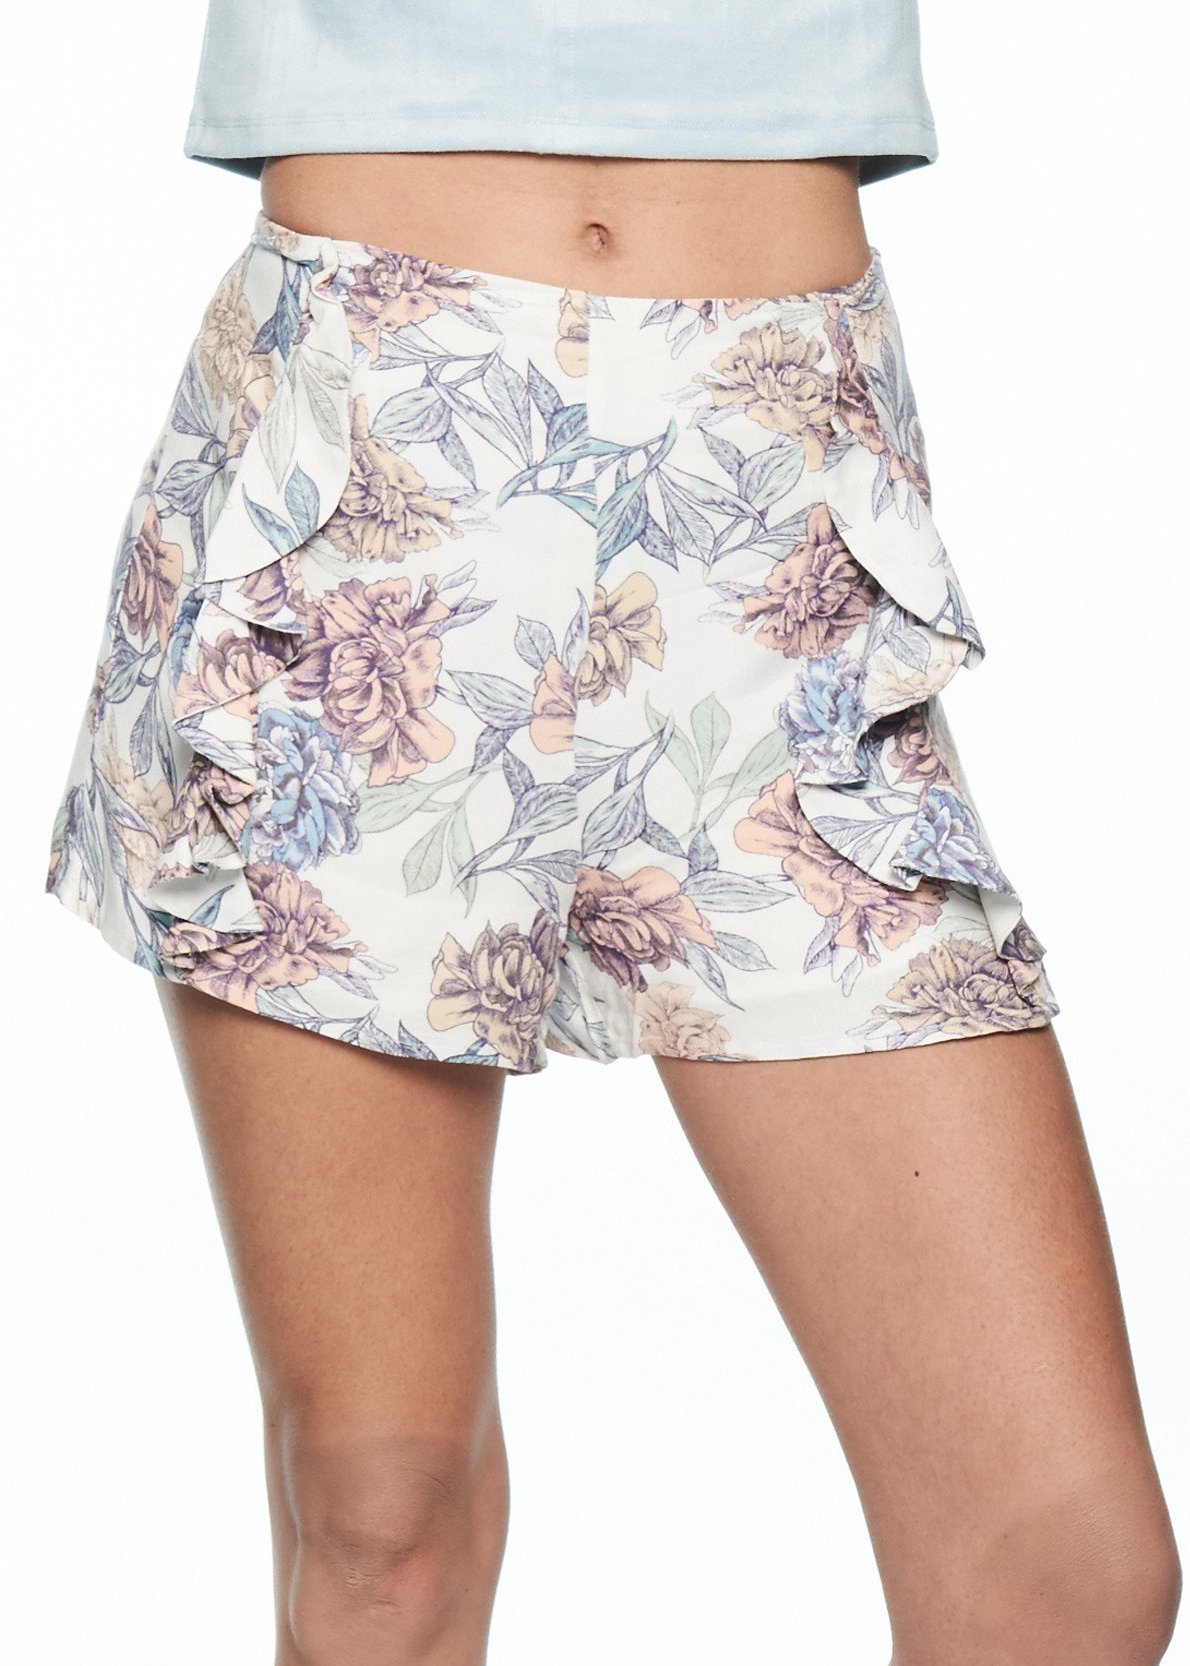 Shorts - Mysterious Shorts (Multicolor)